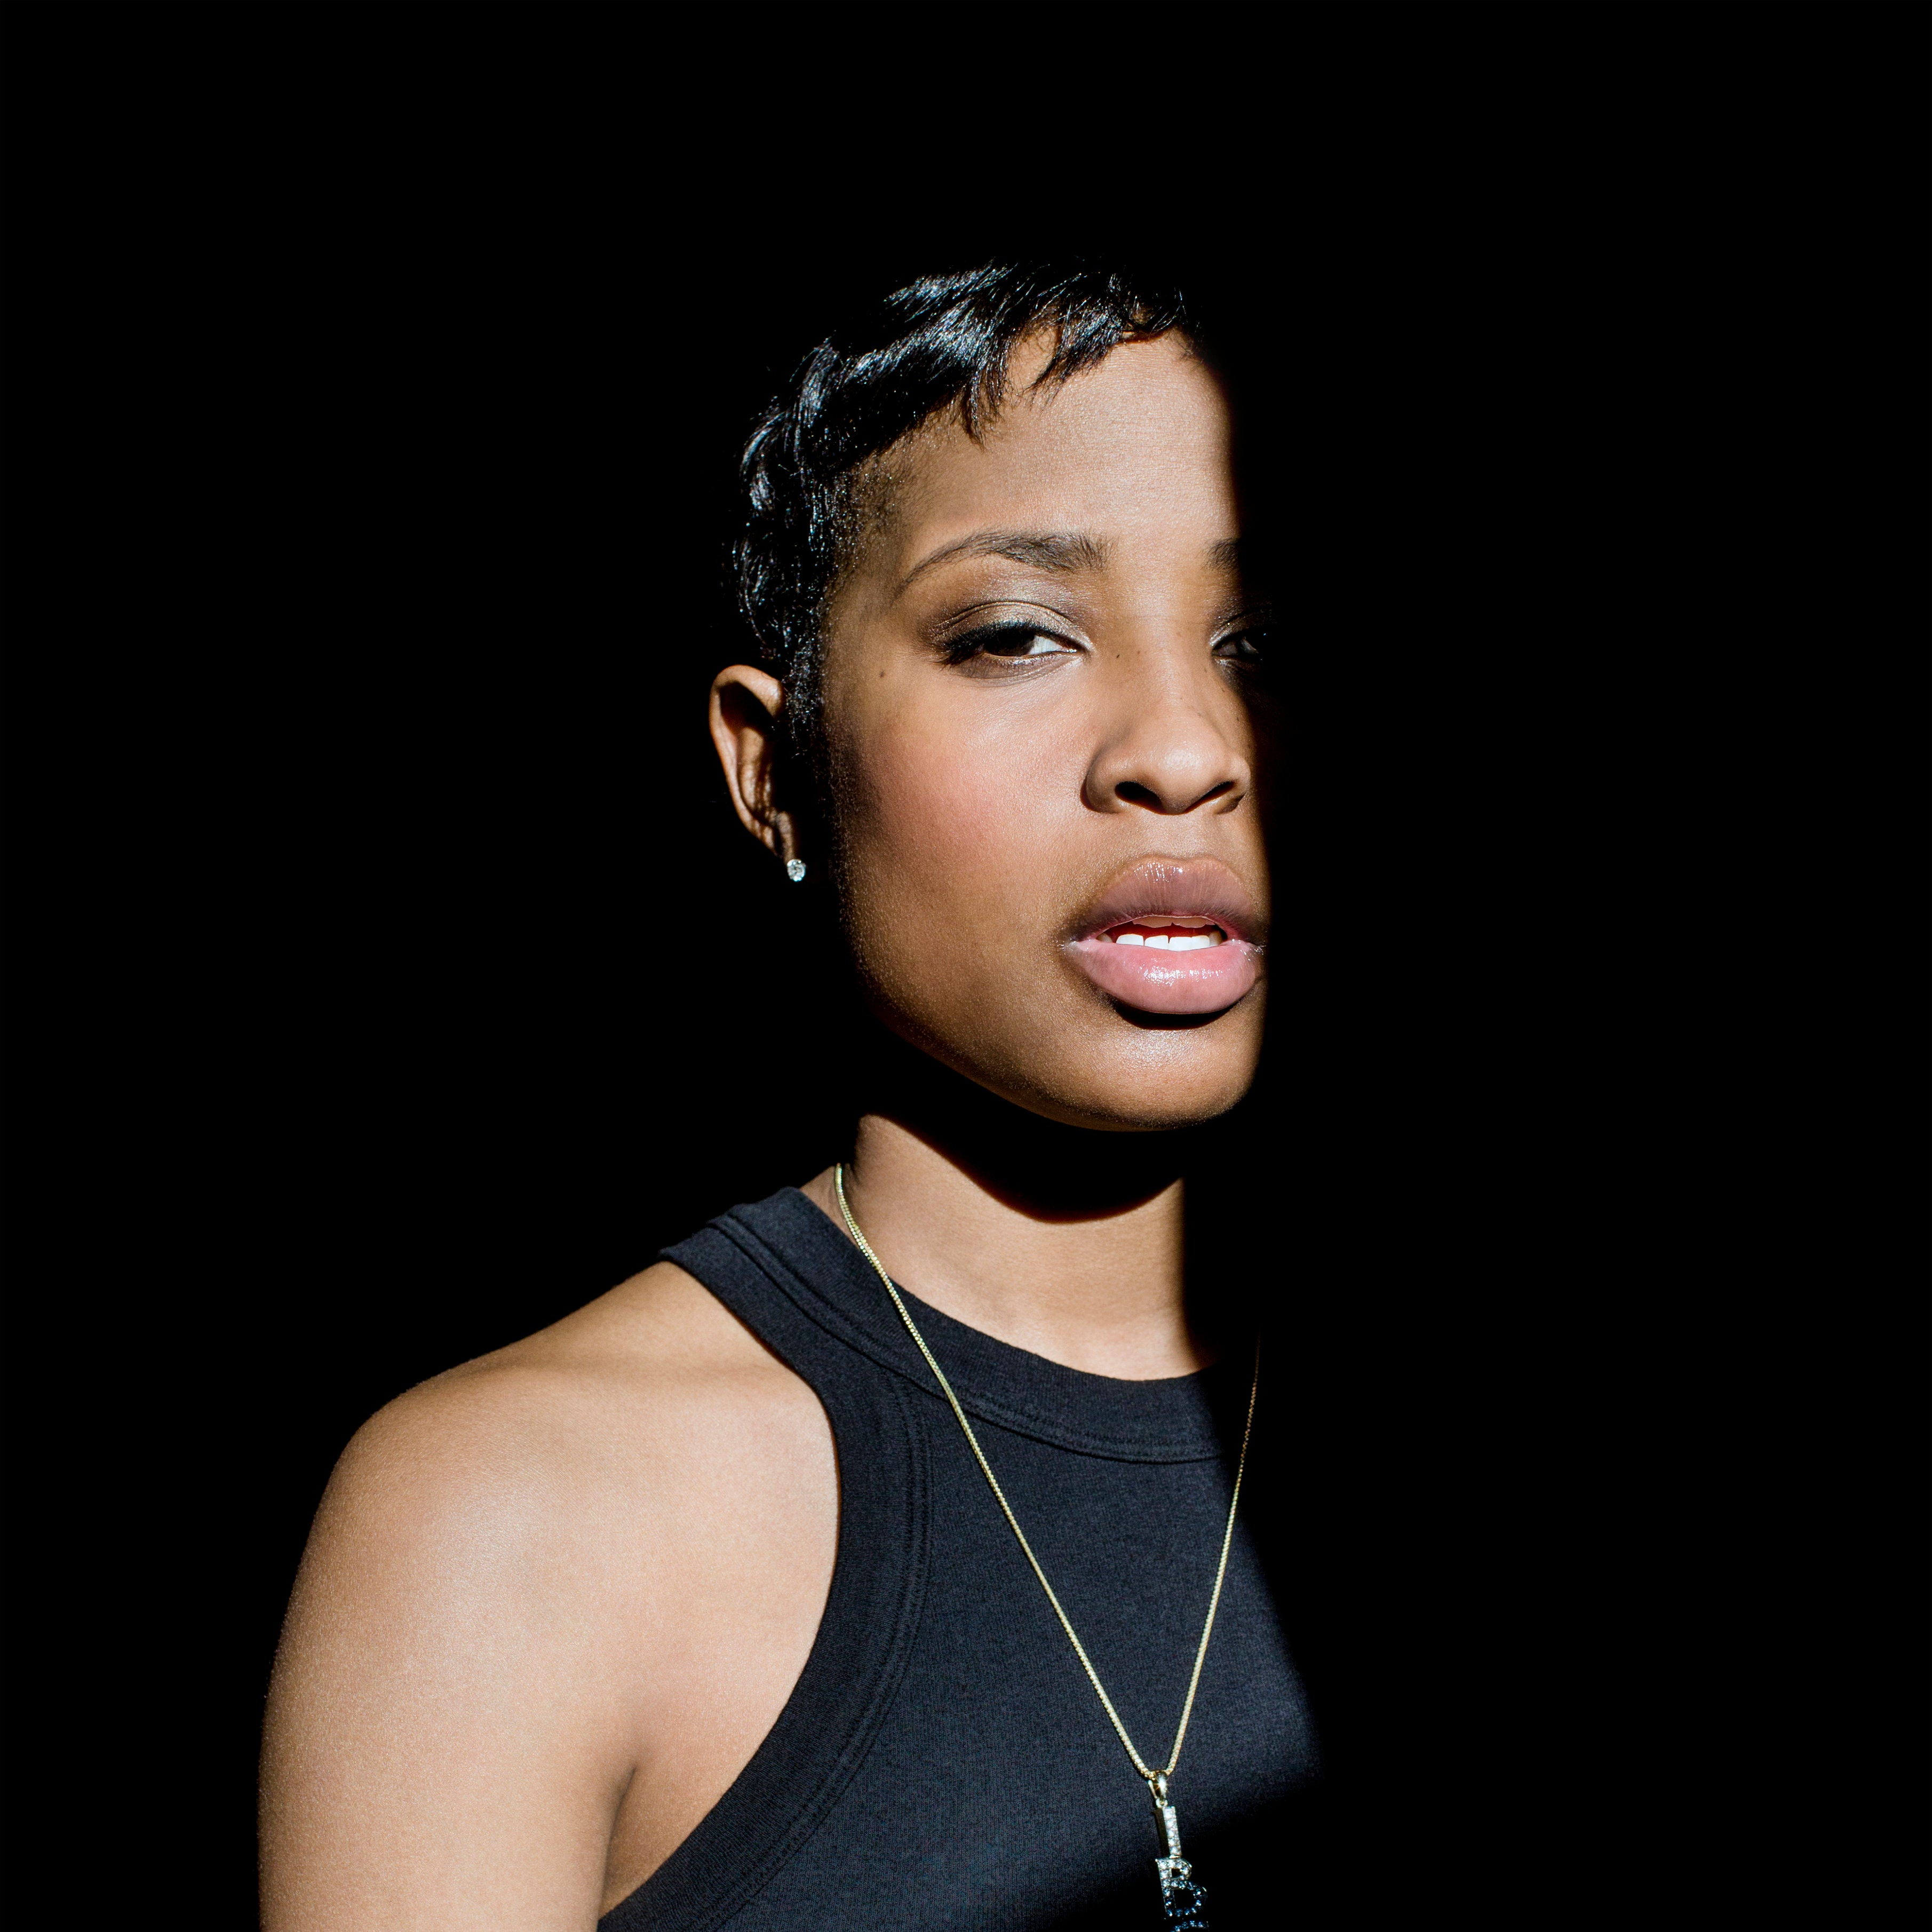 How ESSENCE Festival Artist Dej Loaf Went from Scrubbing Floors to Winning in Hip-Hop